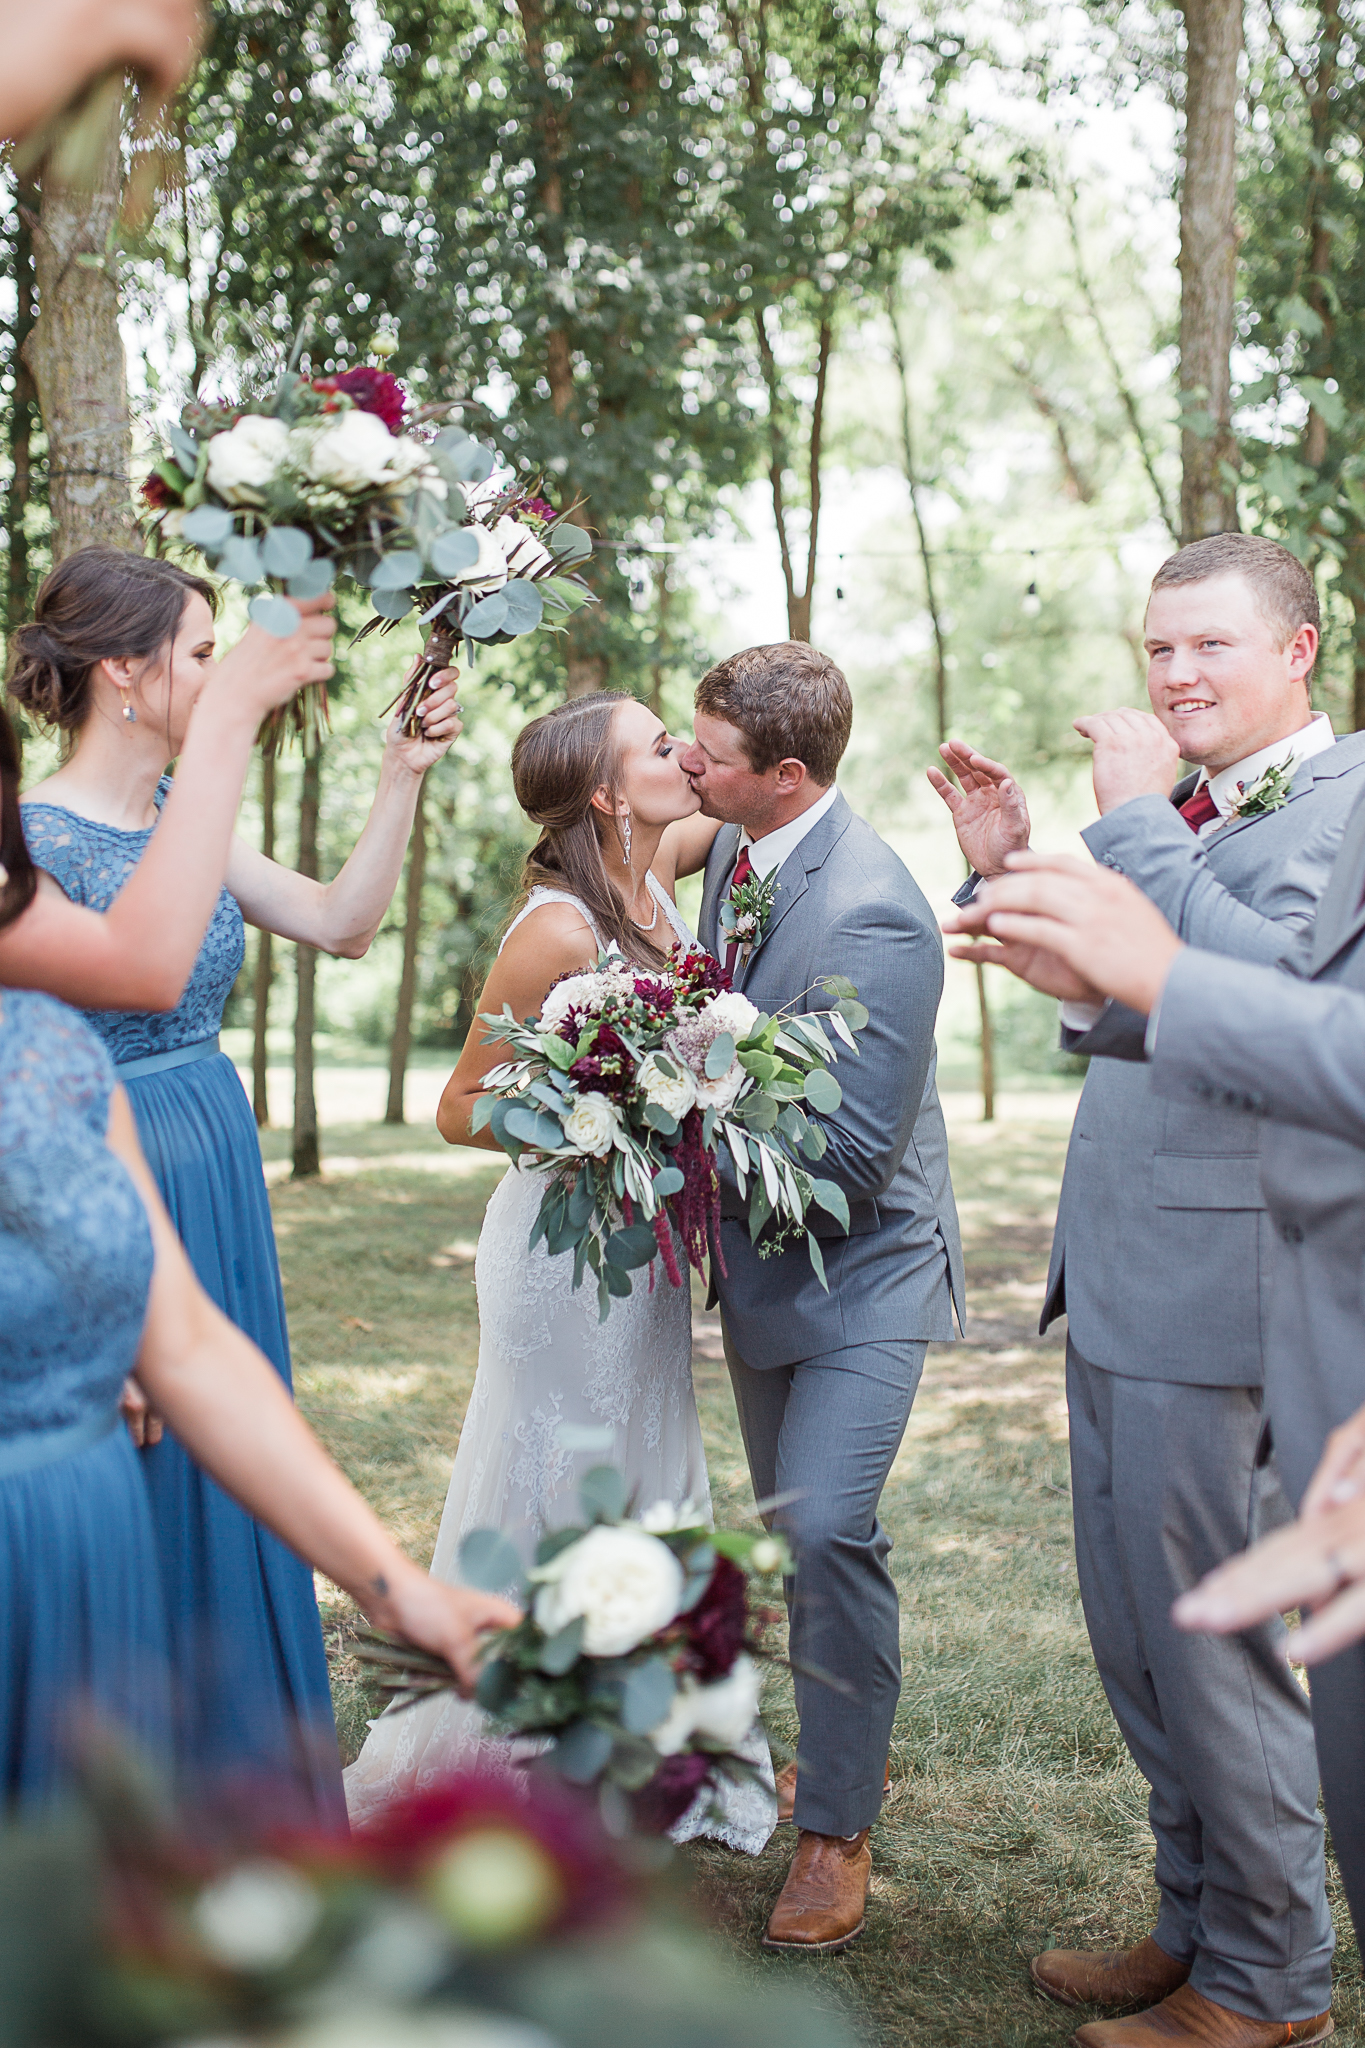 Bride and groom kissing with bridal party cheering and celebrating